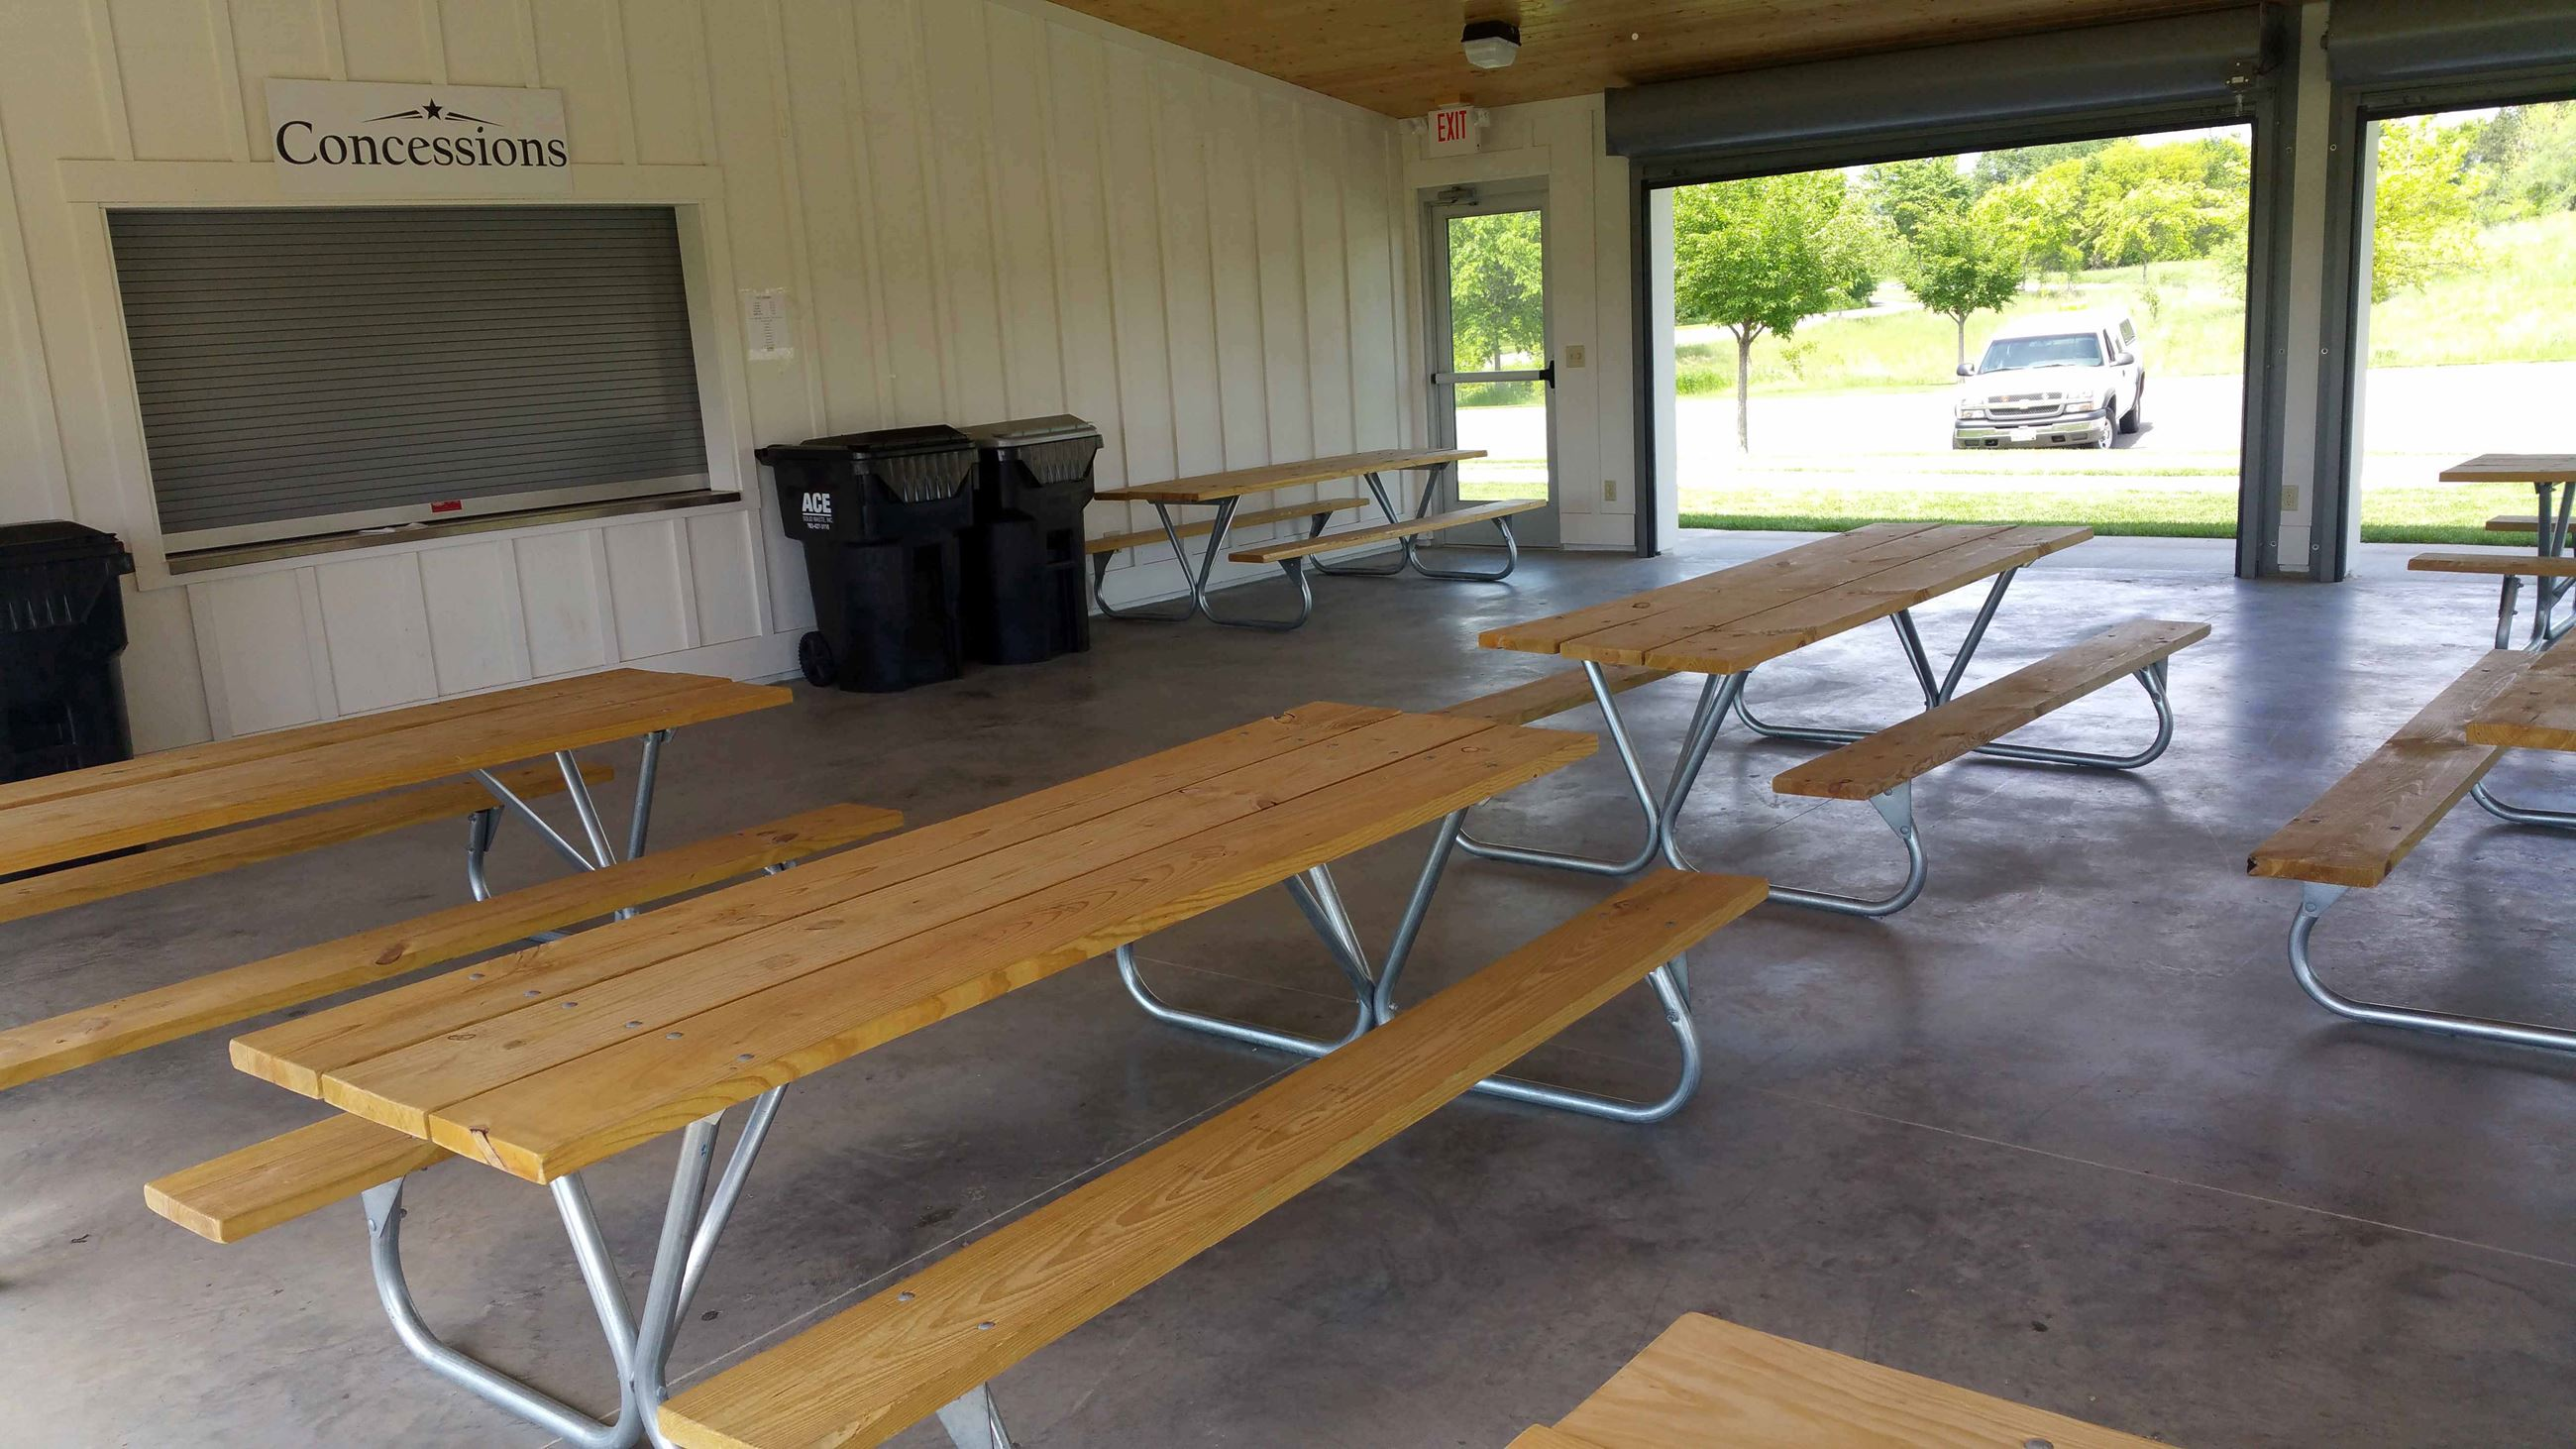 The seating area is outfitted with moveable tables, concession stand, and fireplace. The area has a